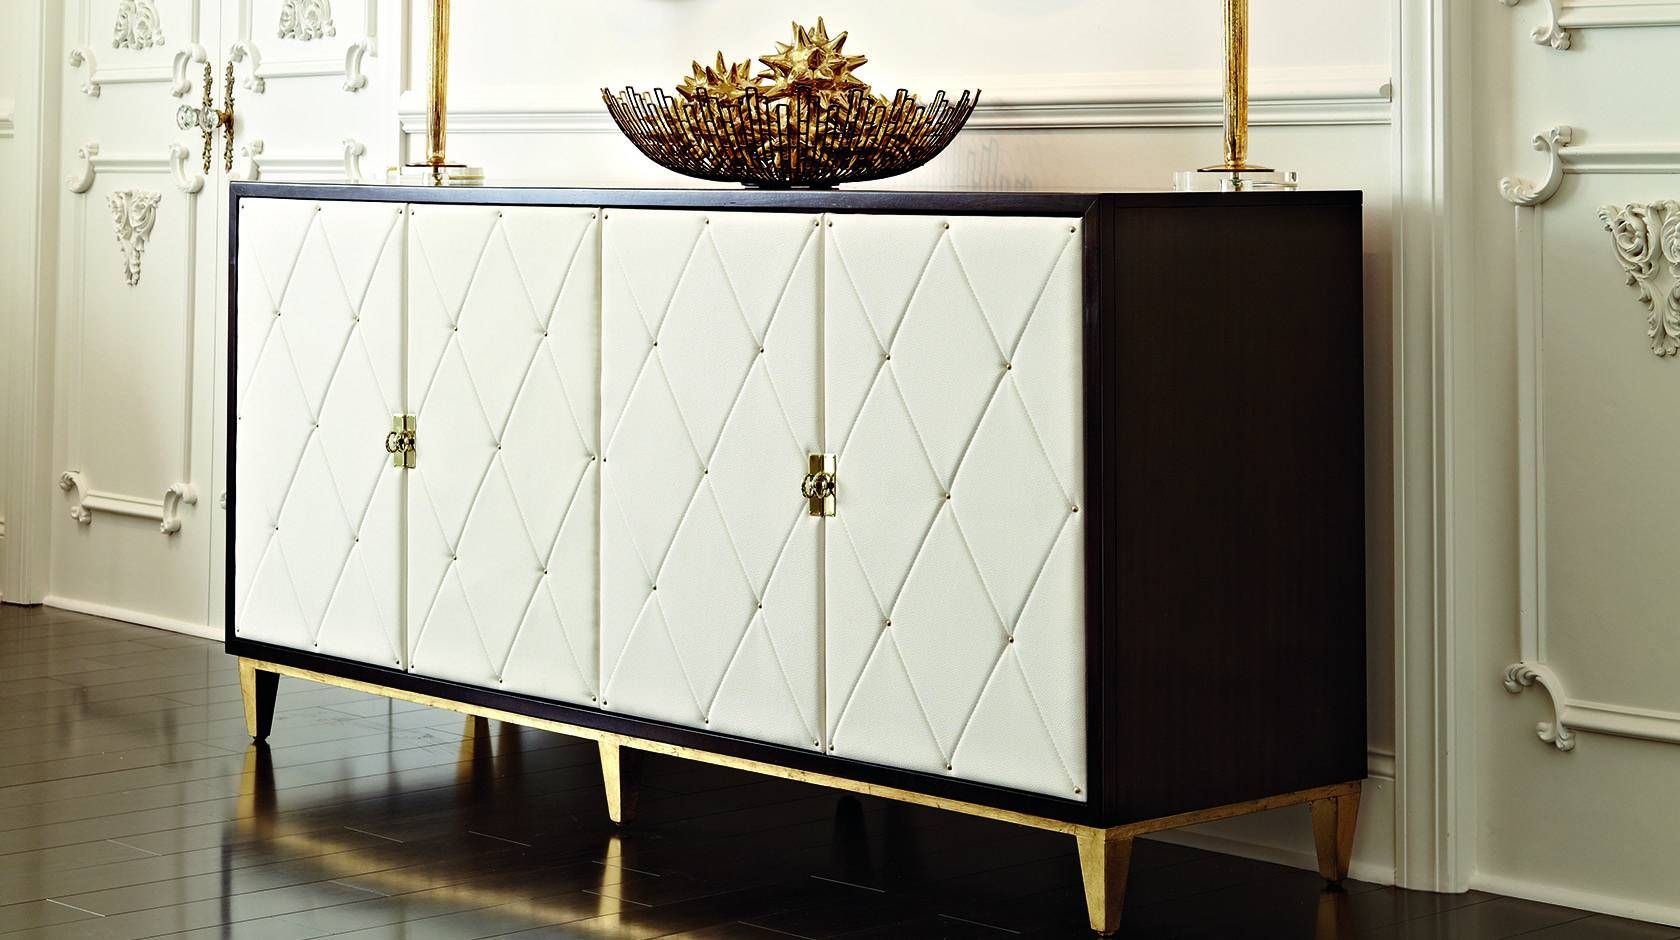 Stylish Storage & Shelving – Safavieh Home Furniture For Best And Newest Safavieh Sideboards (#15 of 15)